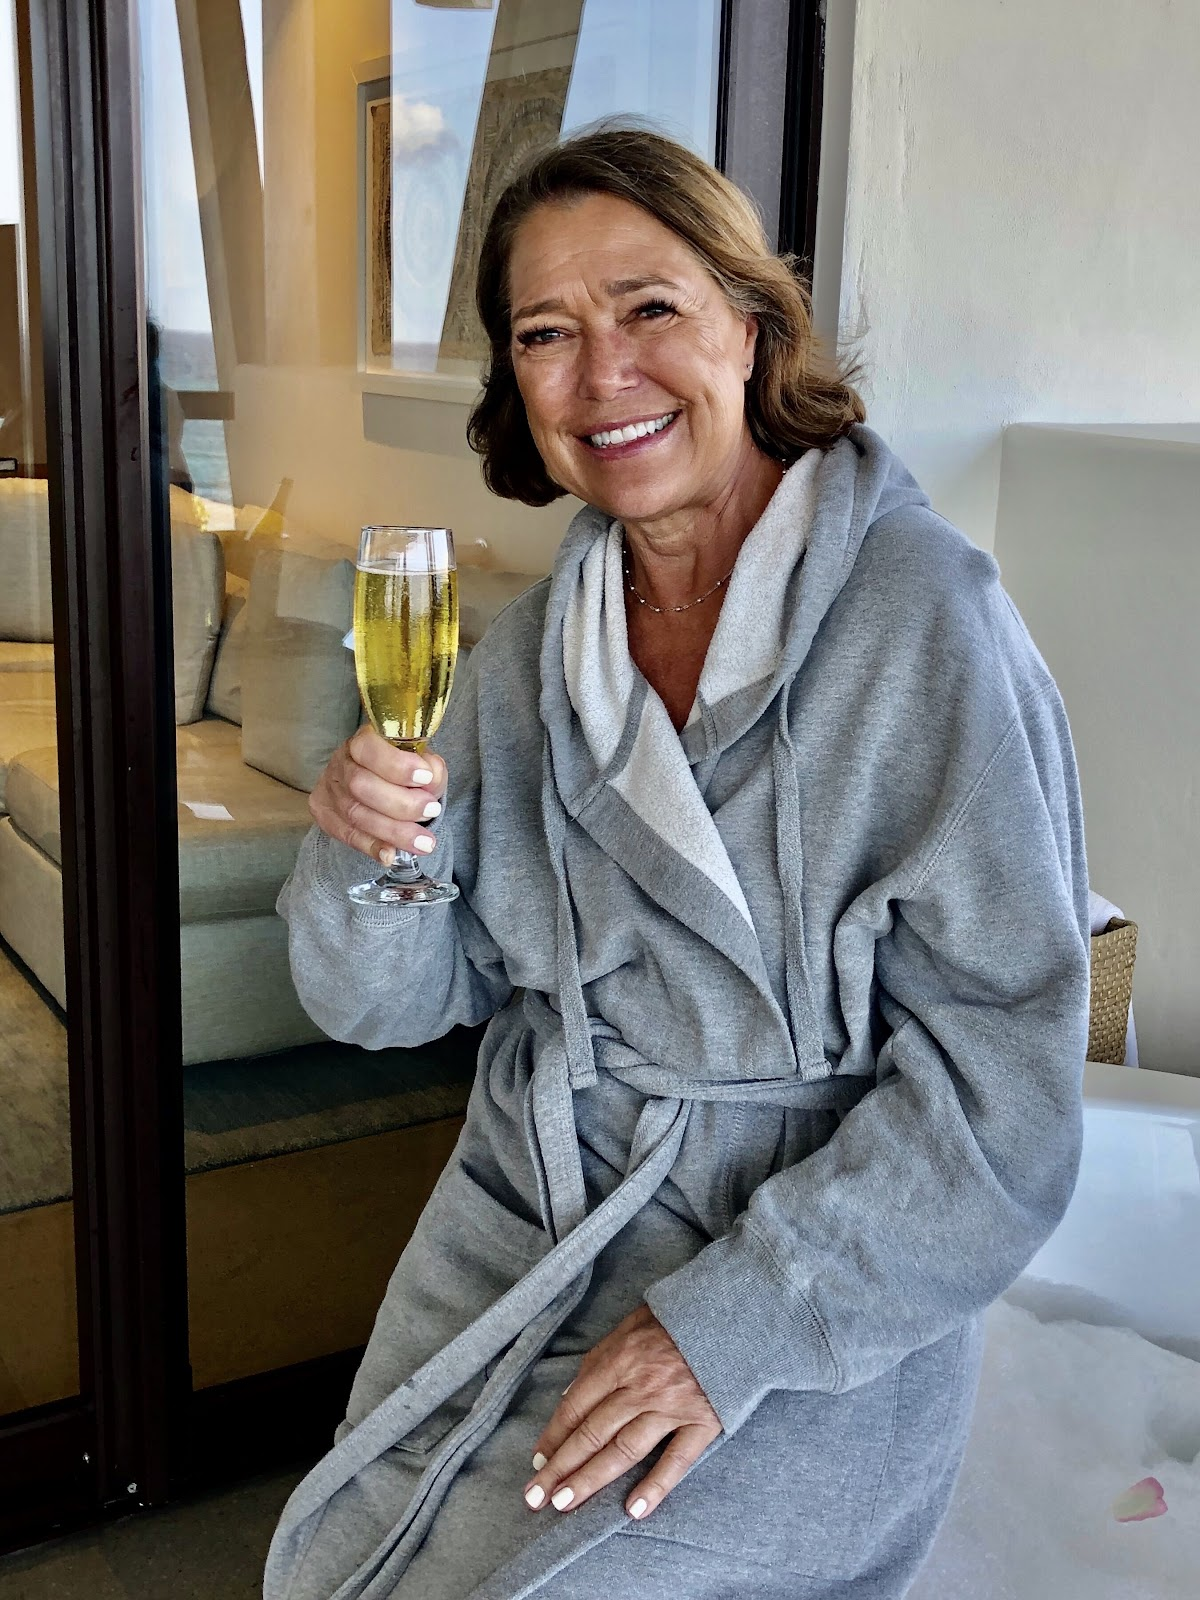 LuAnn in the famous UNICO Robes